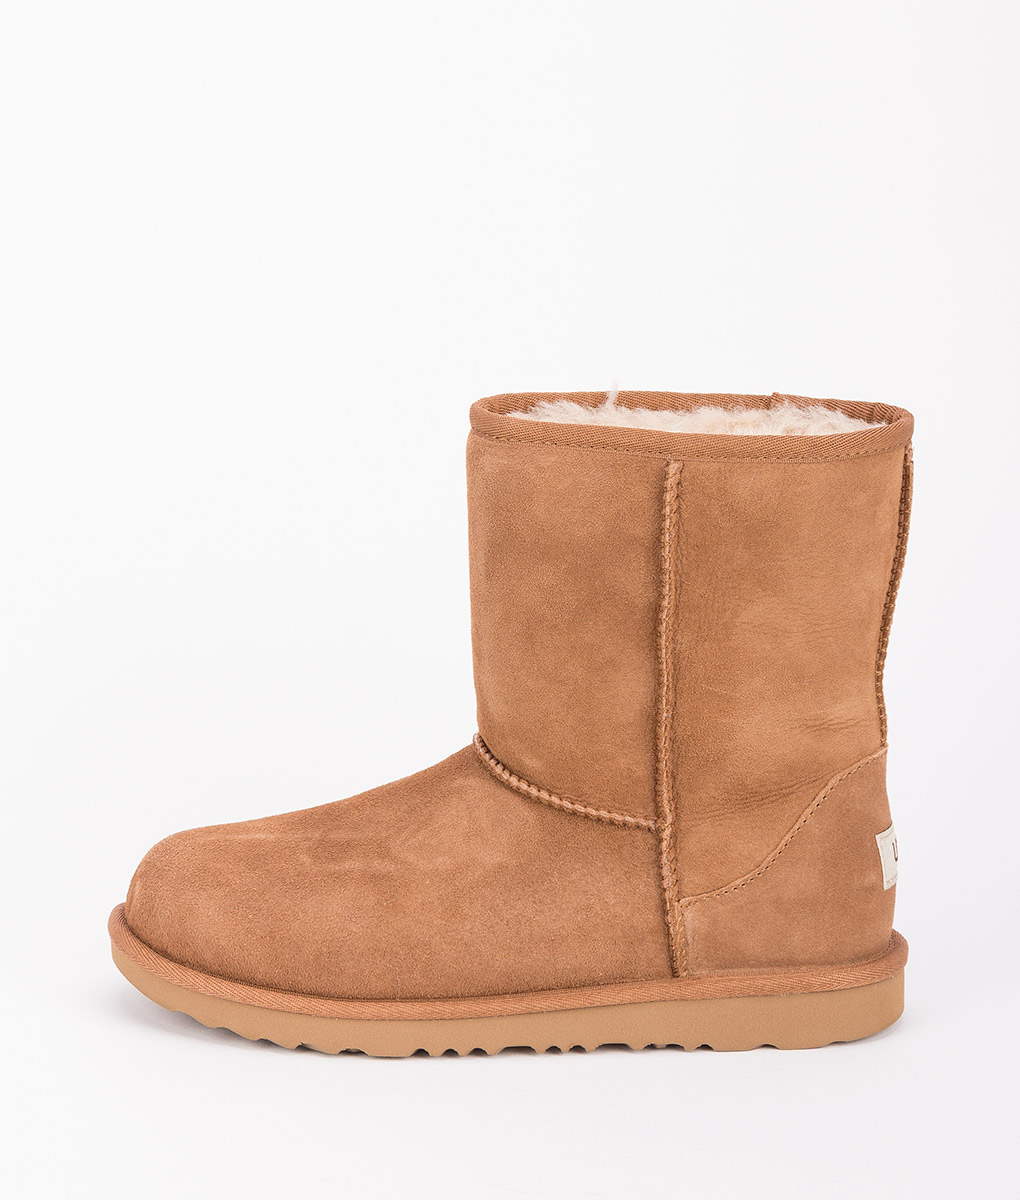 UGG Kids Ankle Boots 1017703K CLASSIC II, Chestnut